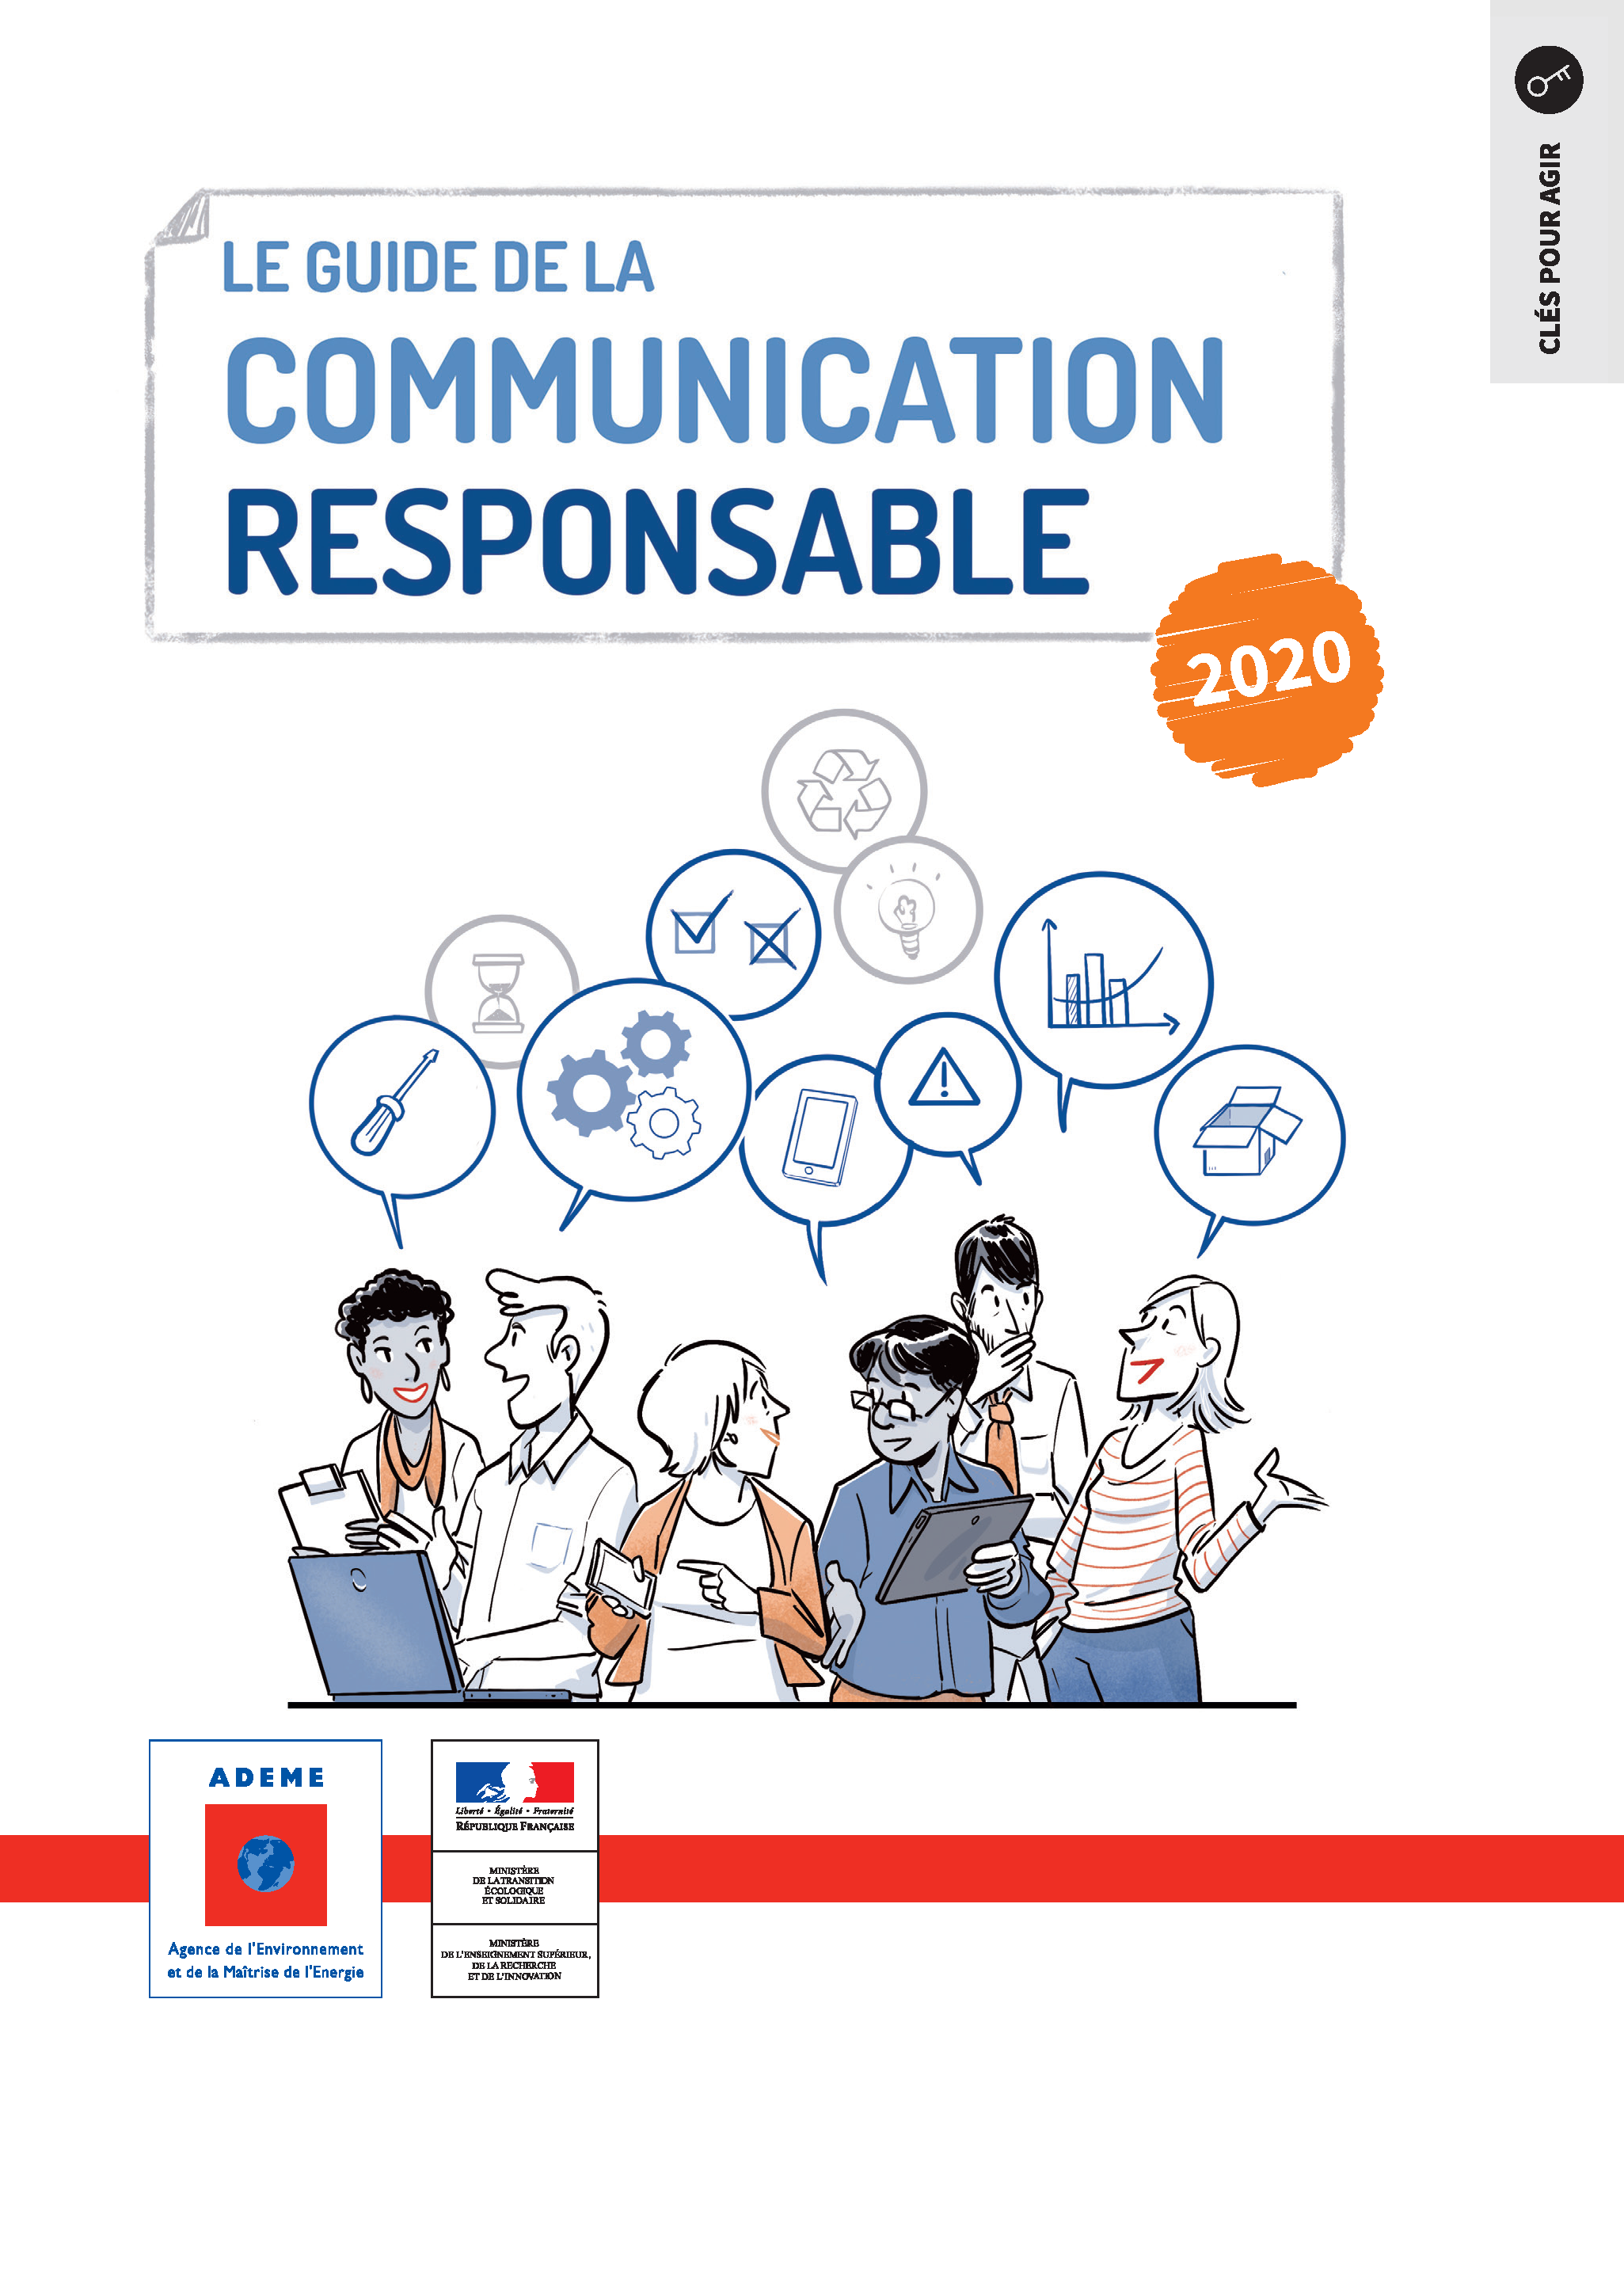 Le guide de la communication responsable